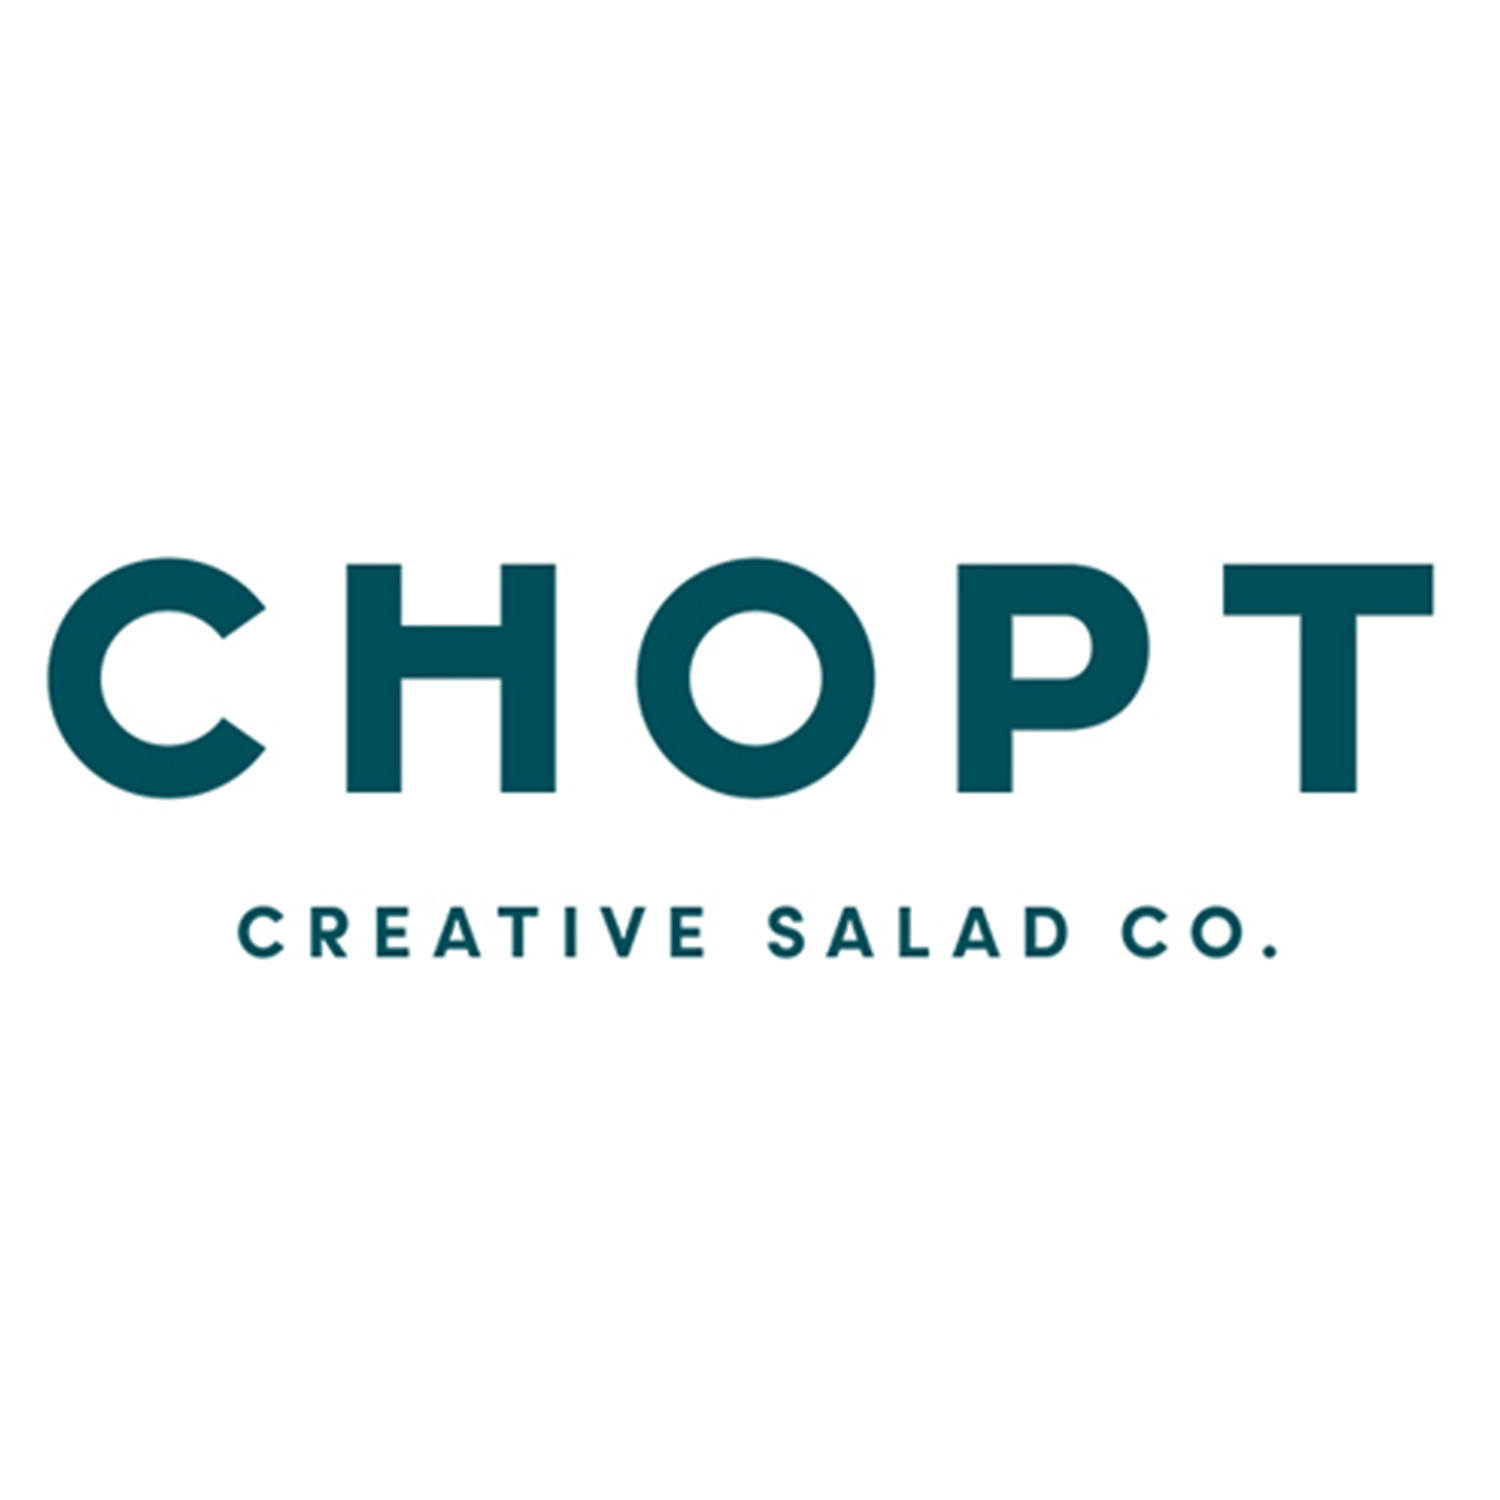 CHOPT CREATIVE SALAD.jpg